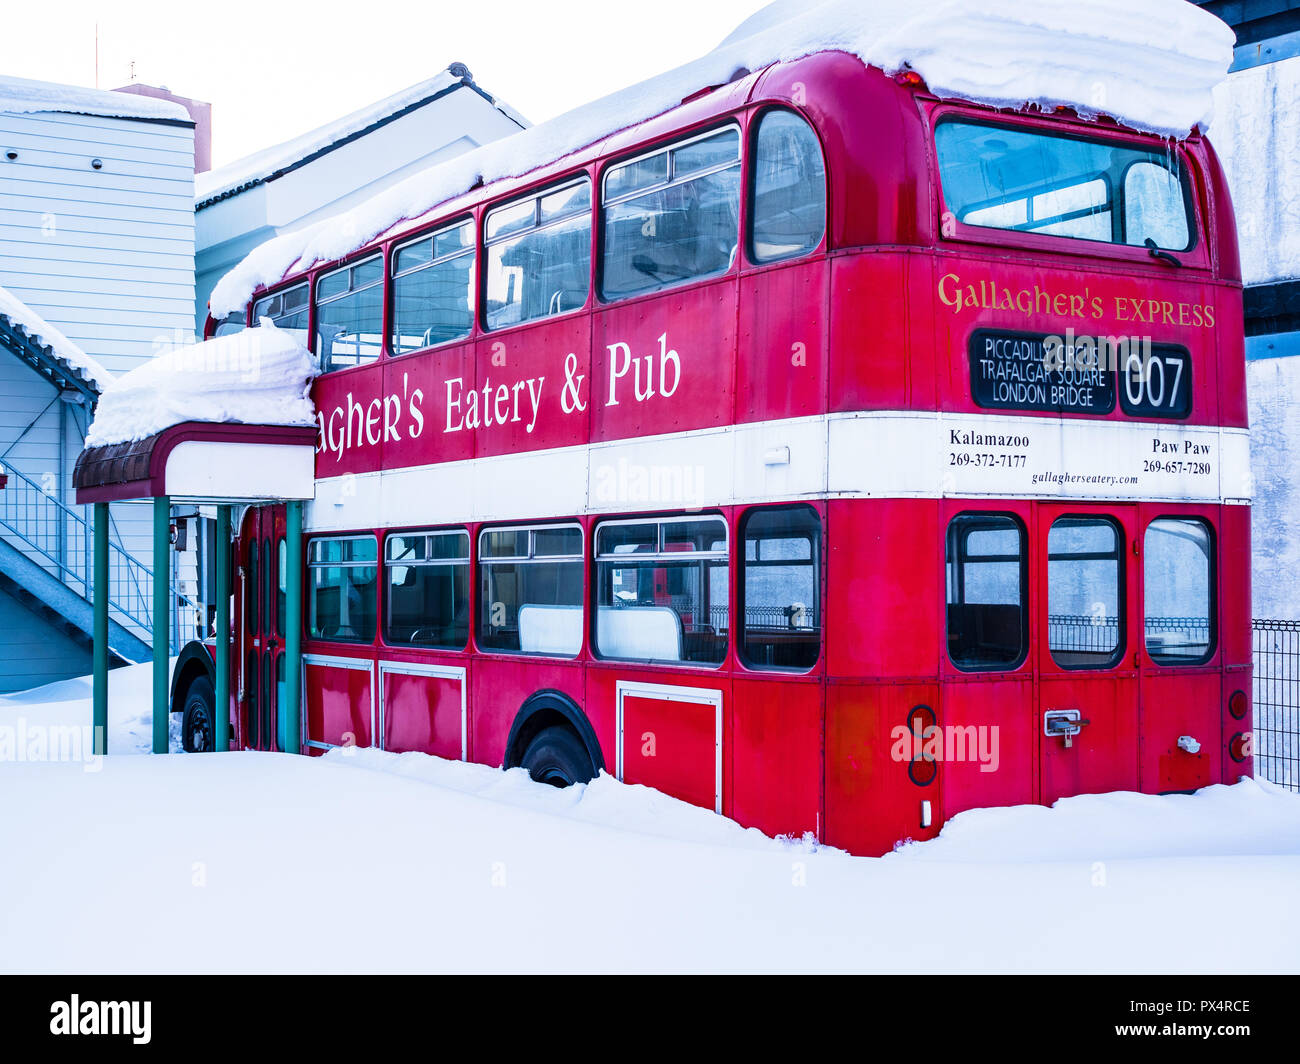 British Bus Japan - a British double decker red bus parked in the yard of a restaurant in the Japanese port city of Hakodate on the island of Hokkaido - Stock Image